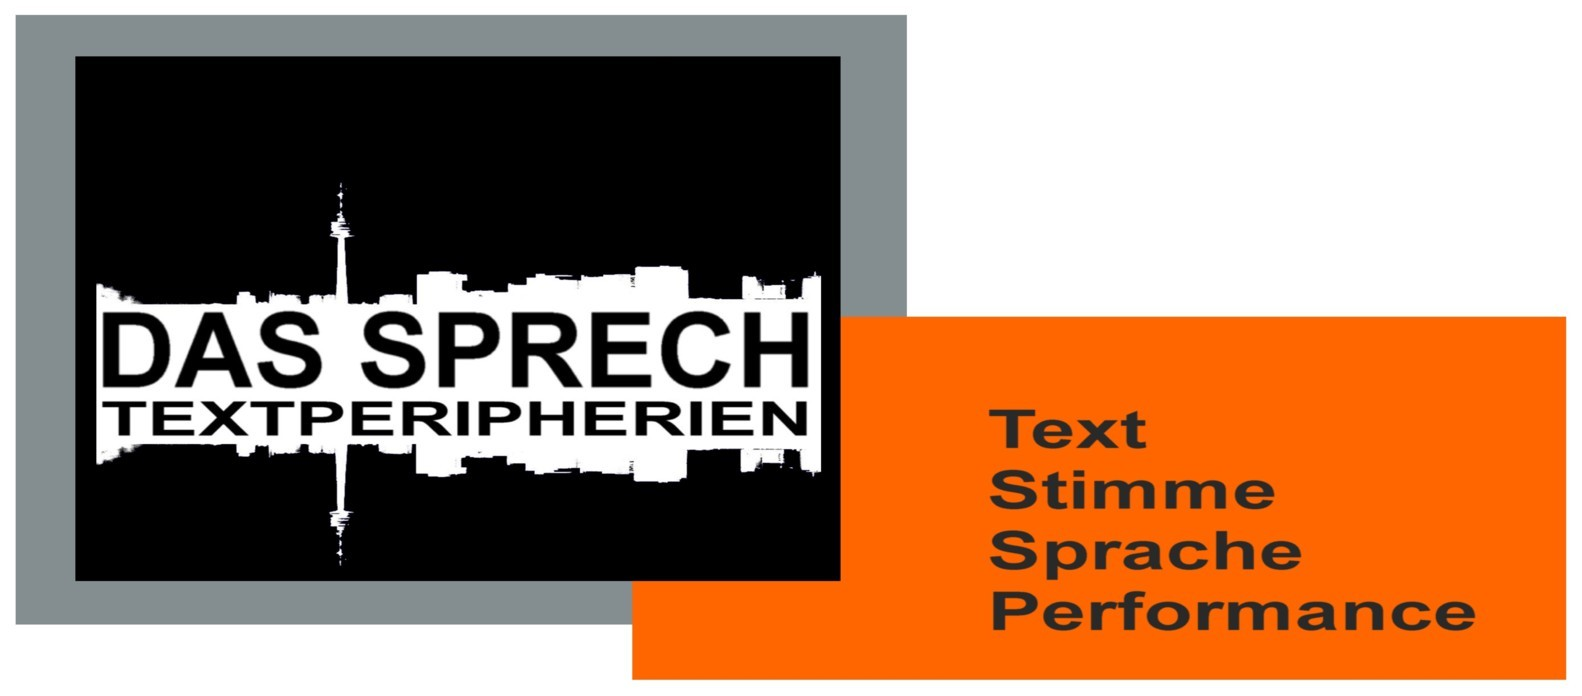 DAS SPRECH - Text, Stimme, Sprache, Performance